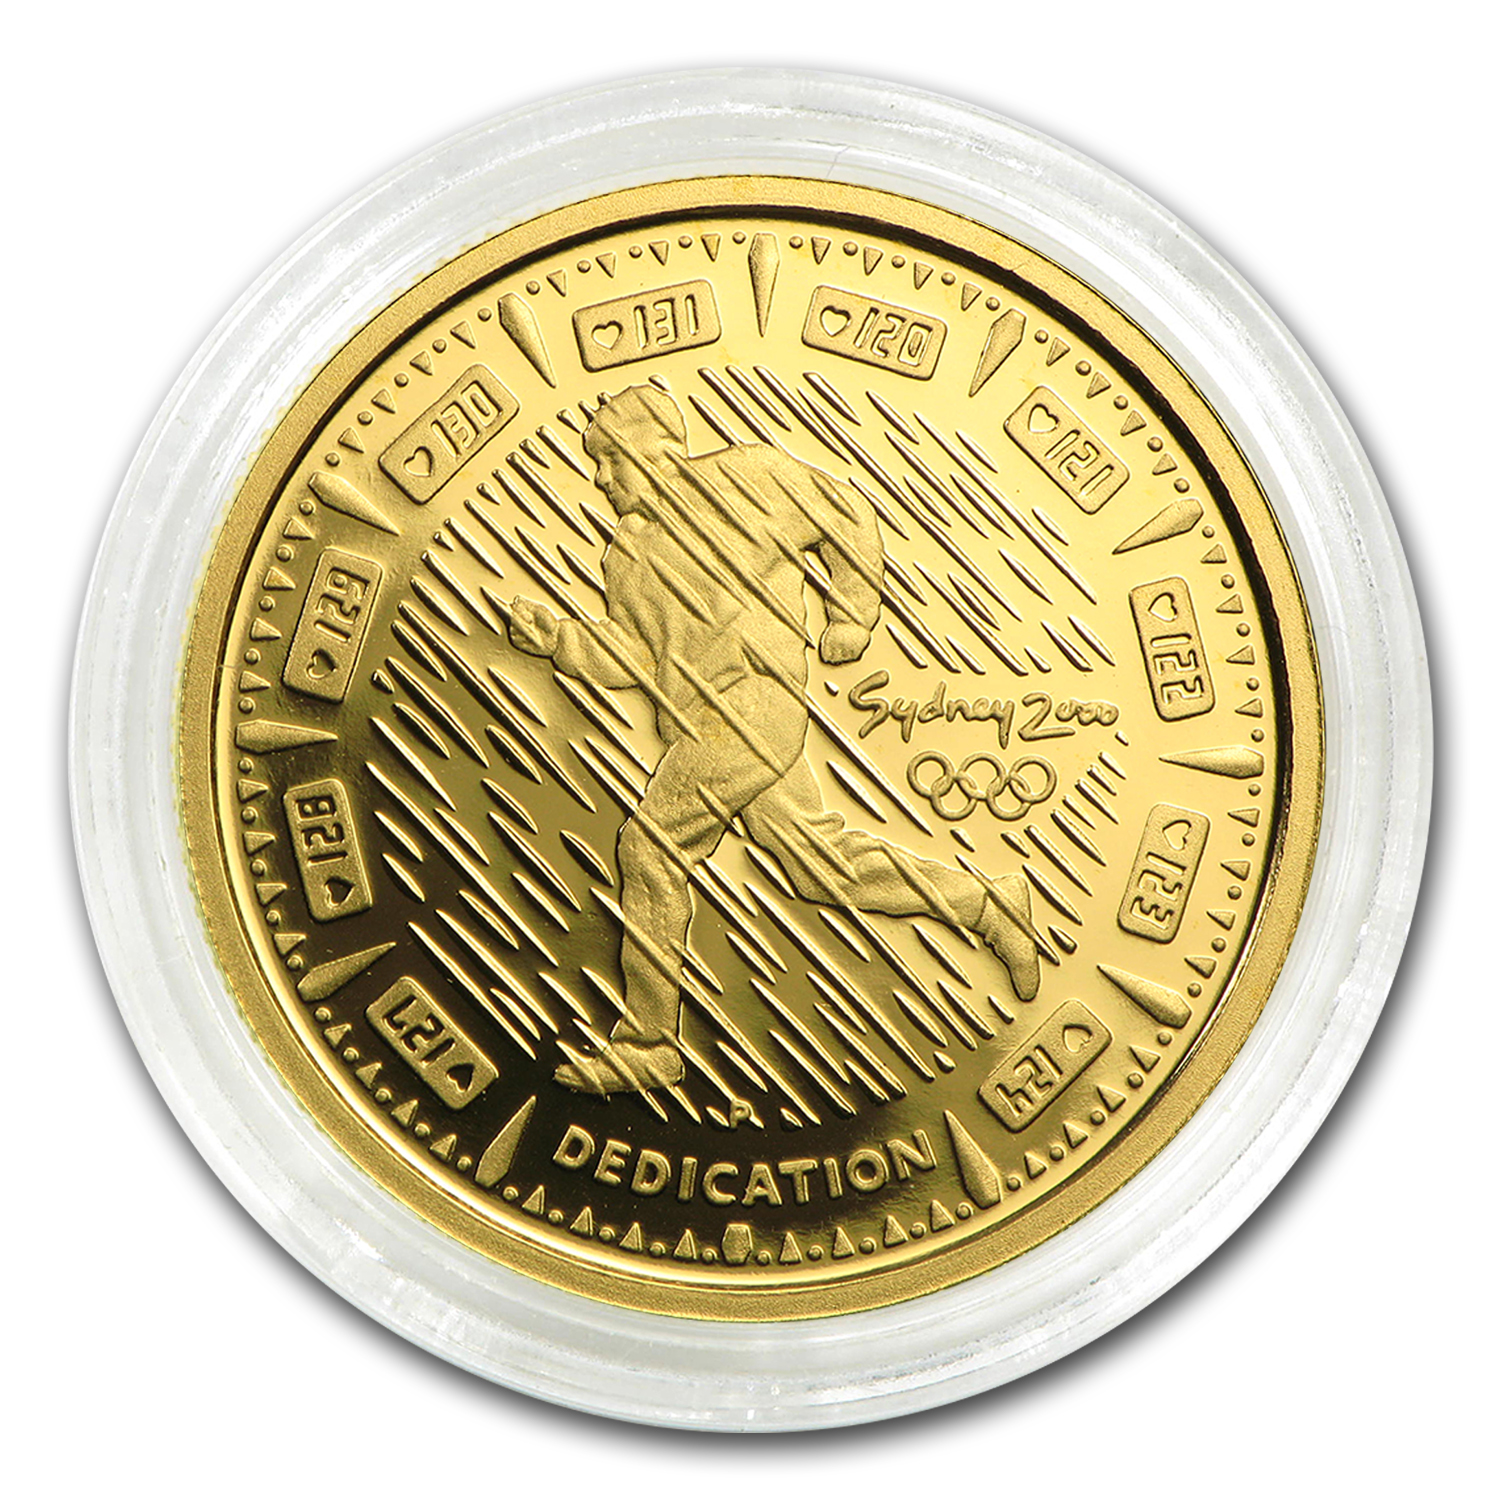 2000 Australia Proof Gold $100